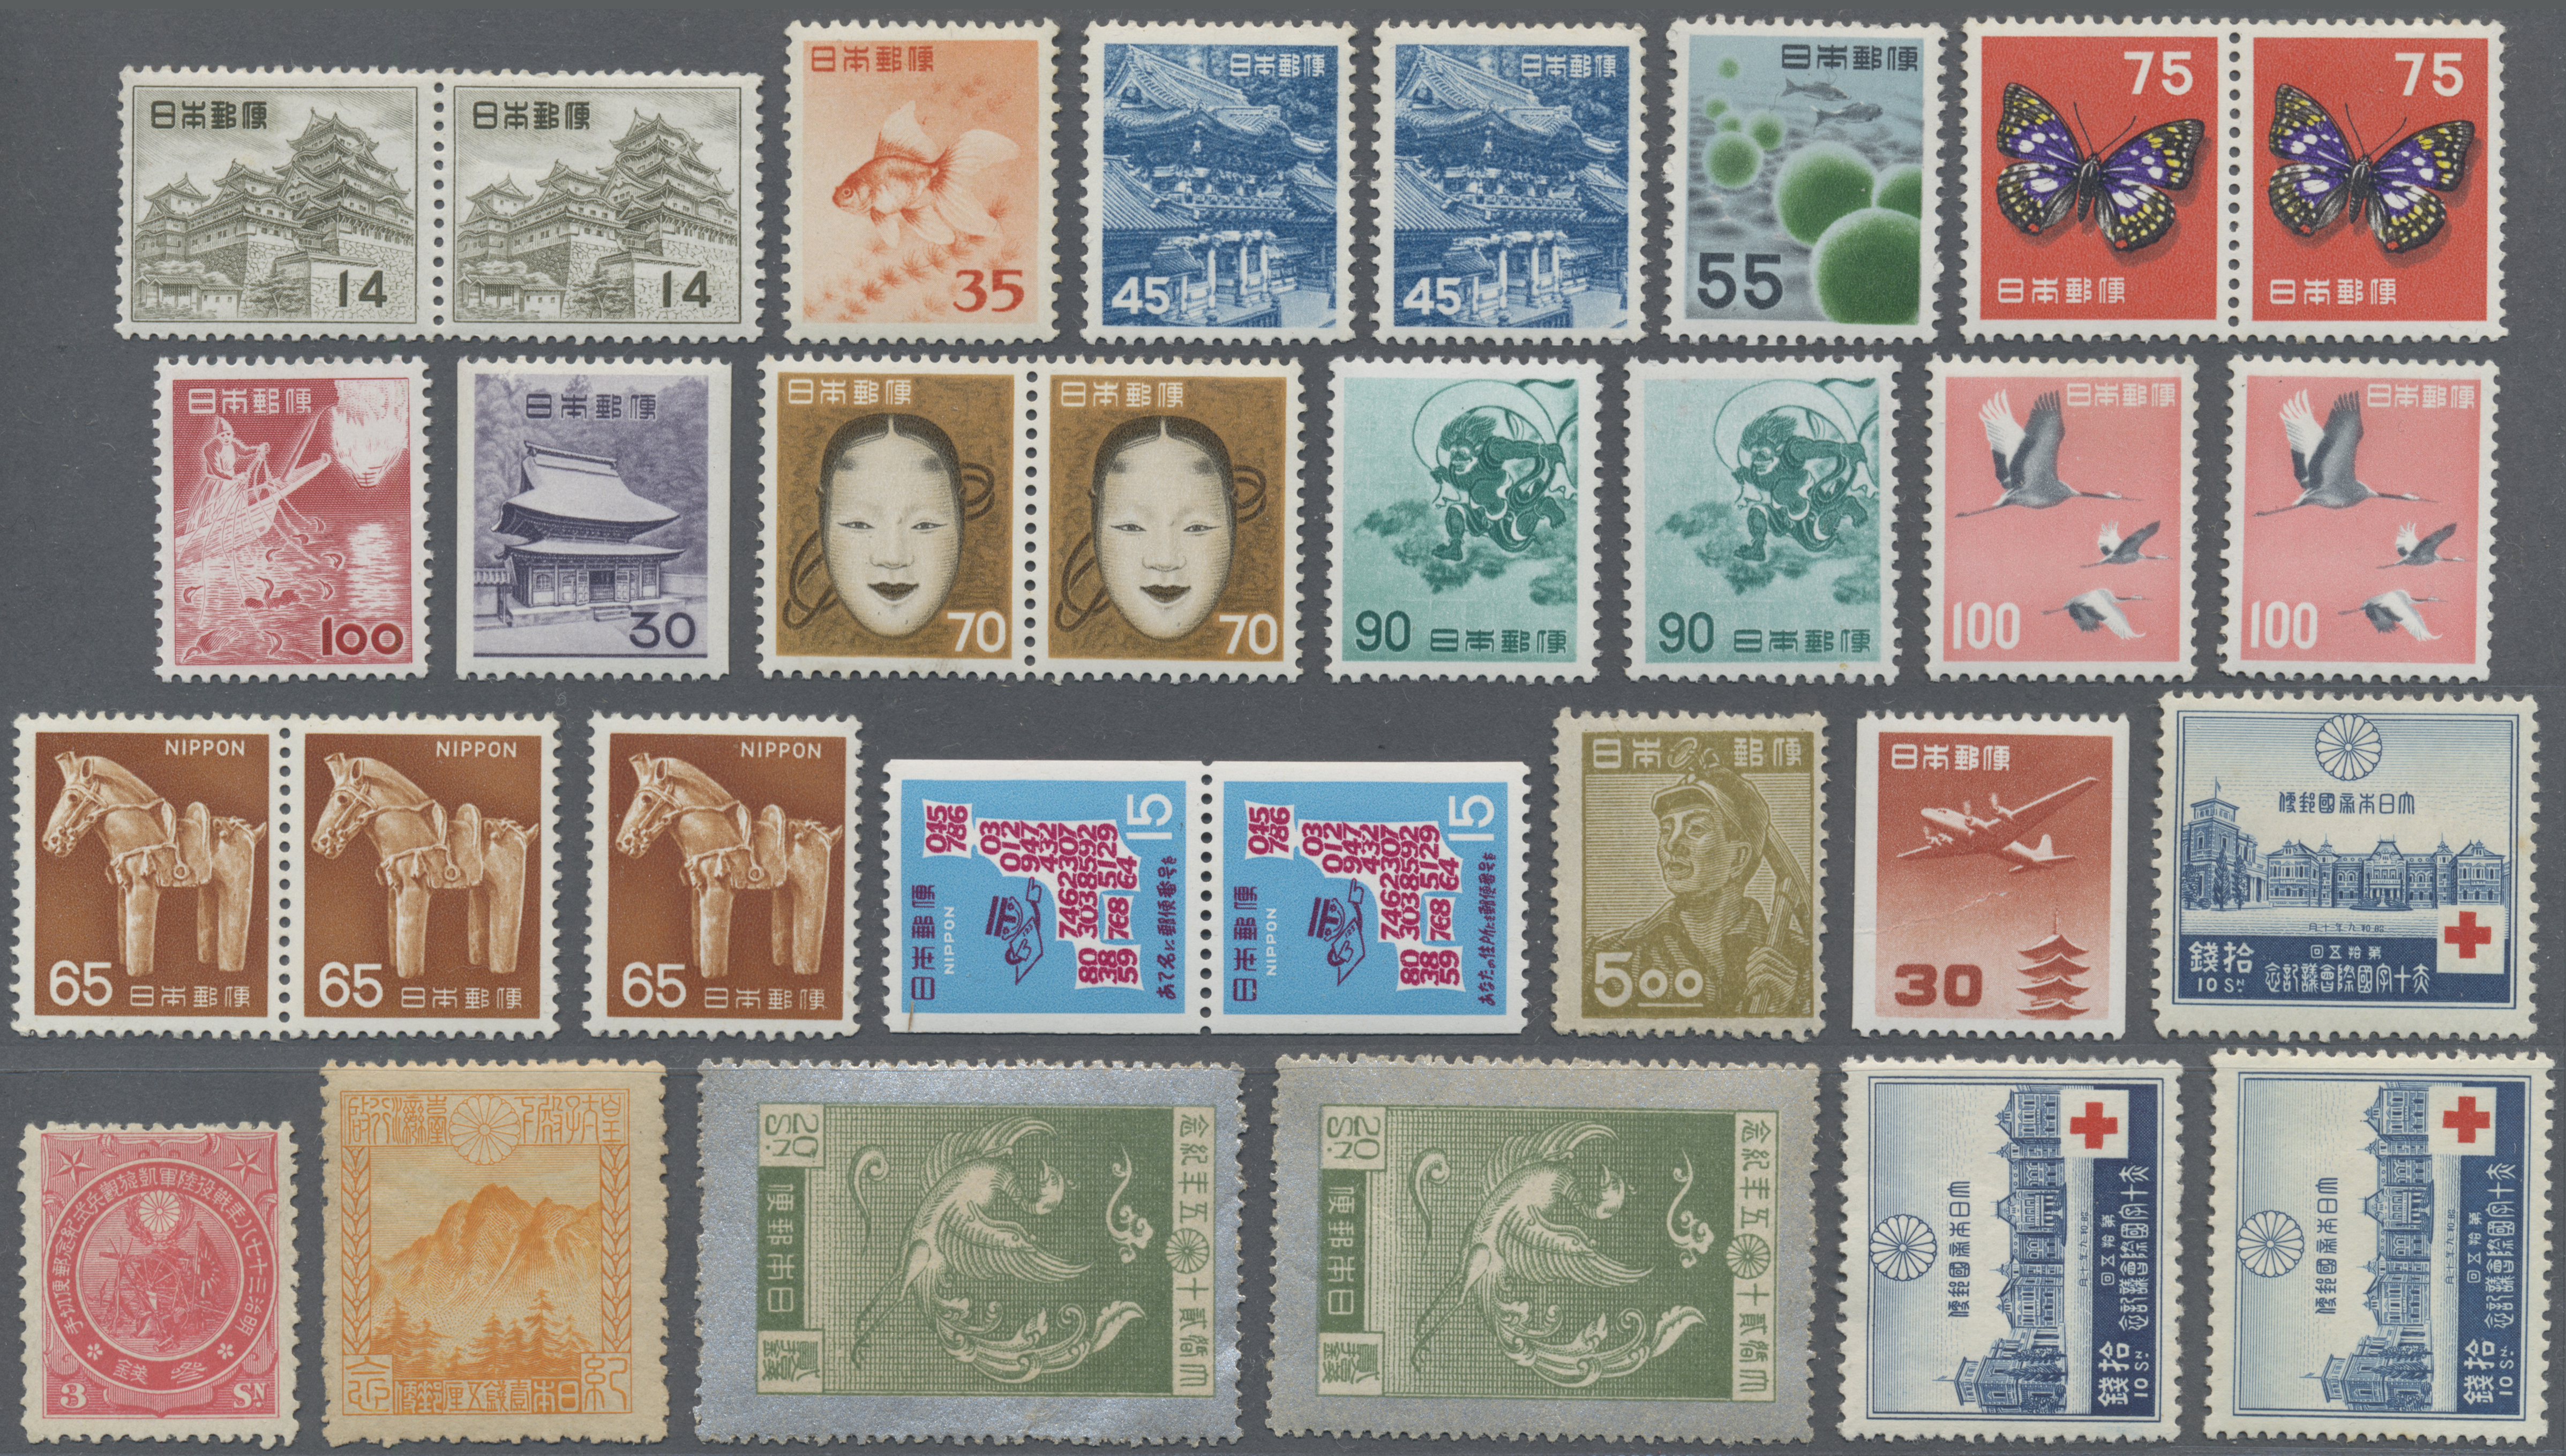 Lot 34537 - Japan  -  Auktionshaus Christoph Gärtner GmbH & Co. KG Collections Germany,  Collections Supplement, Surprise boxes #39 Day 7